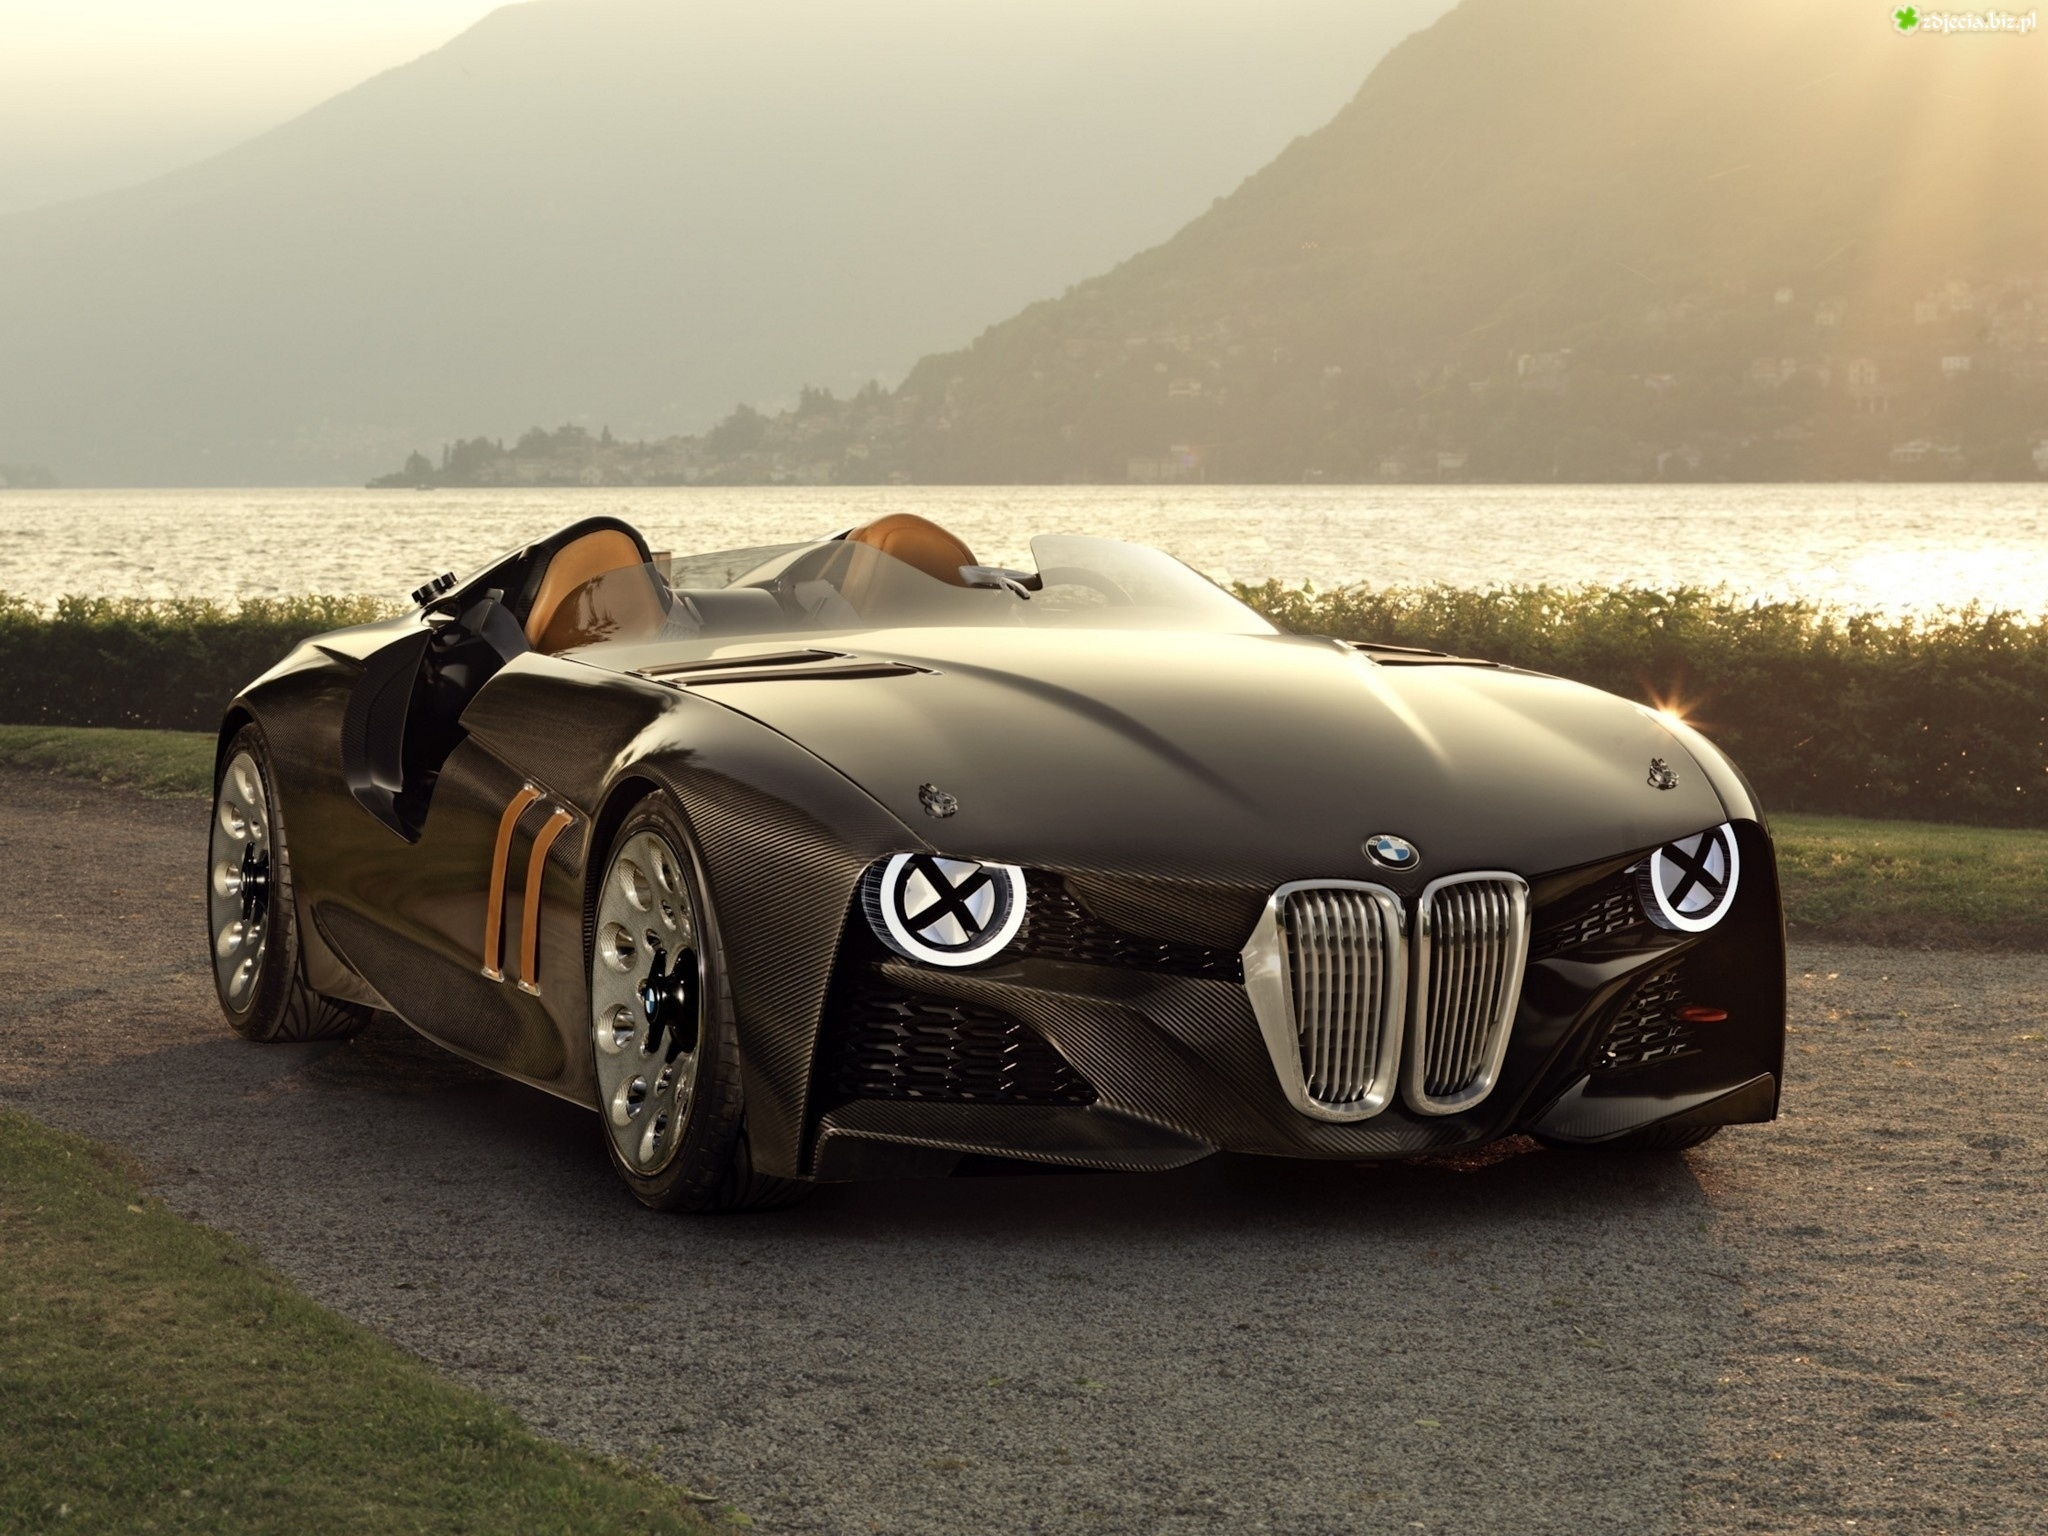 BMW 328 Hommage Concept, Góry